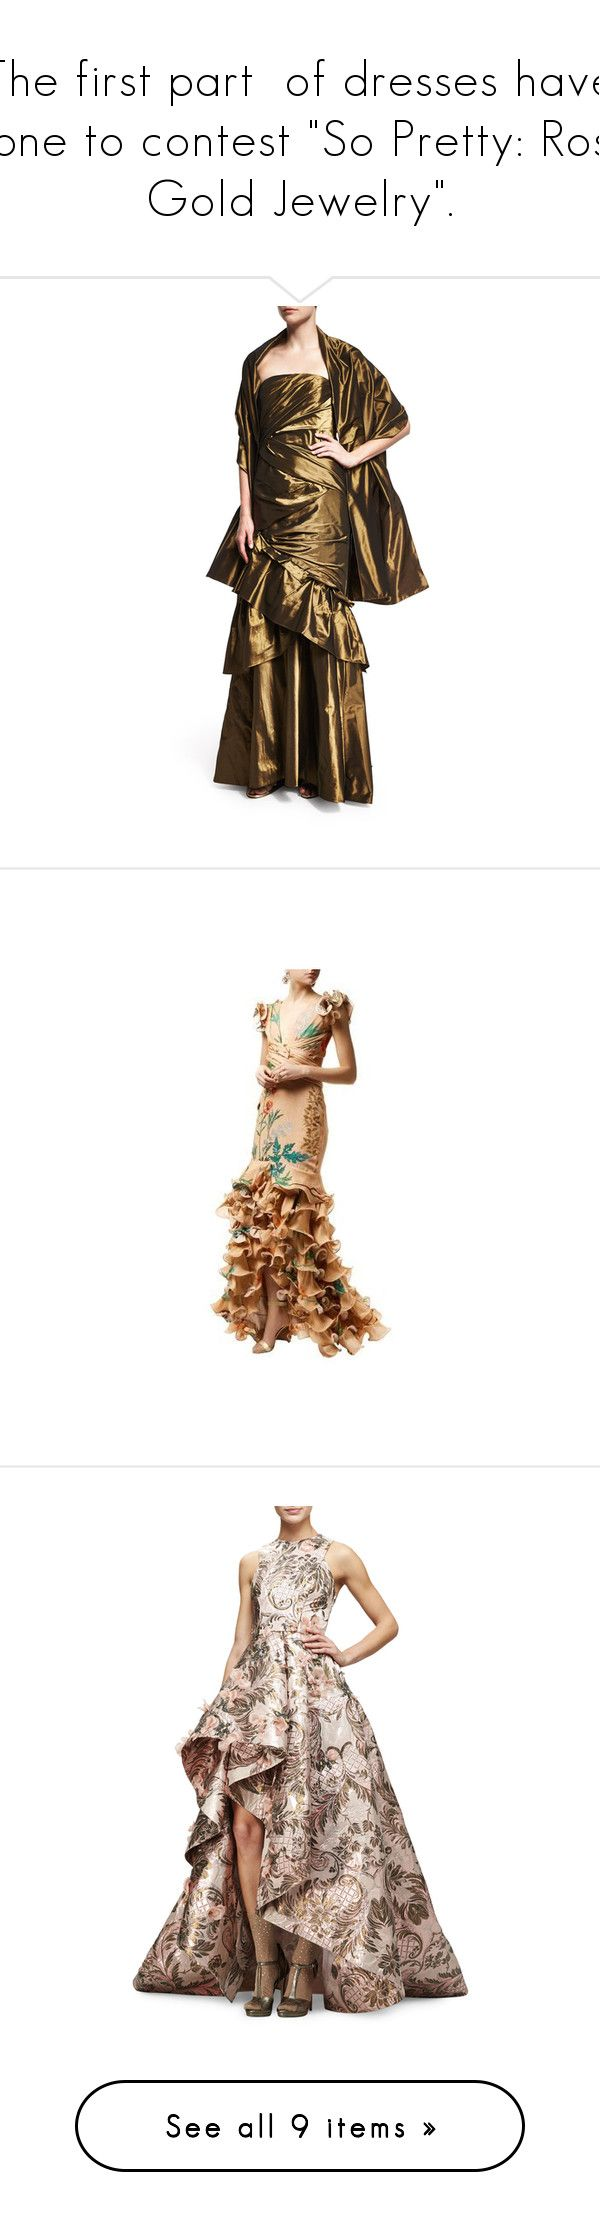 """""""The first part  of dresses have gone to contest """"So Pretty: Rose Gold Jewelry""""."""" by m-kints ❤ liked on Polyvore featuring dresses, gowns, floral evening gown, floral print evening gown, embellished gown, silk gown, floral evening dresses, blush, sleeveless dress and metallic dress"""